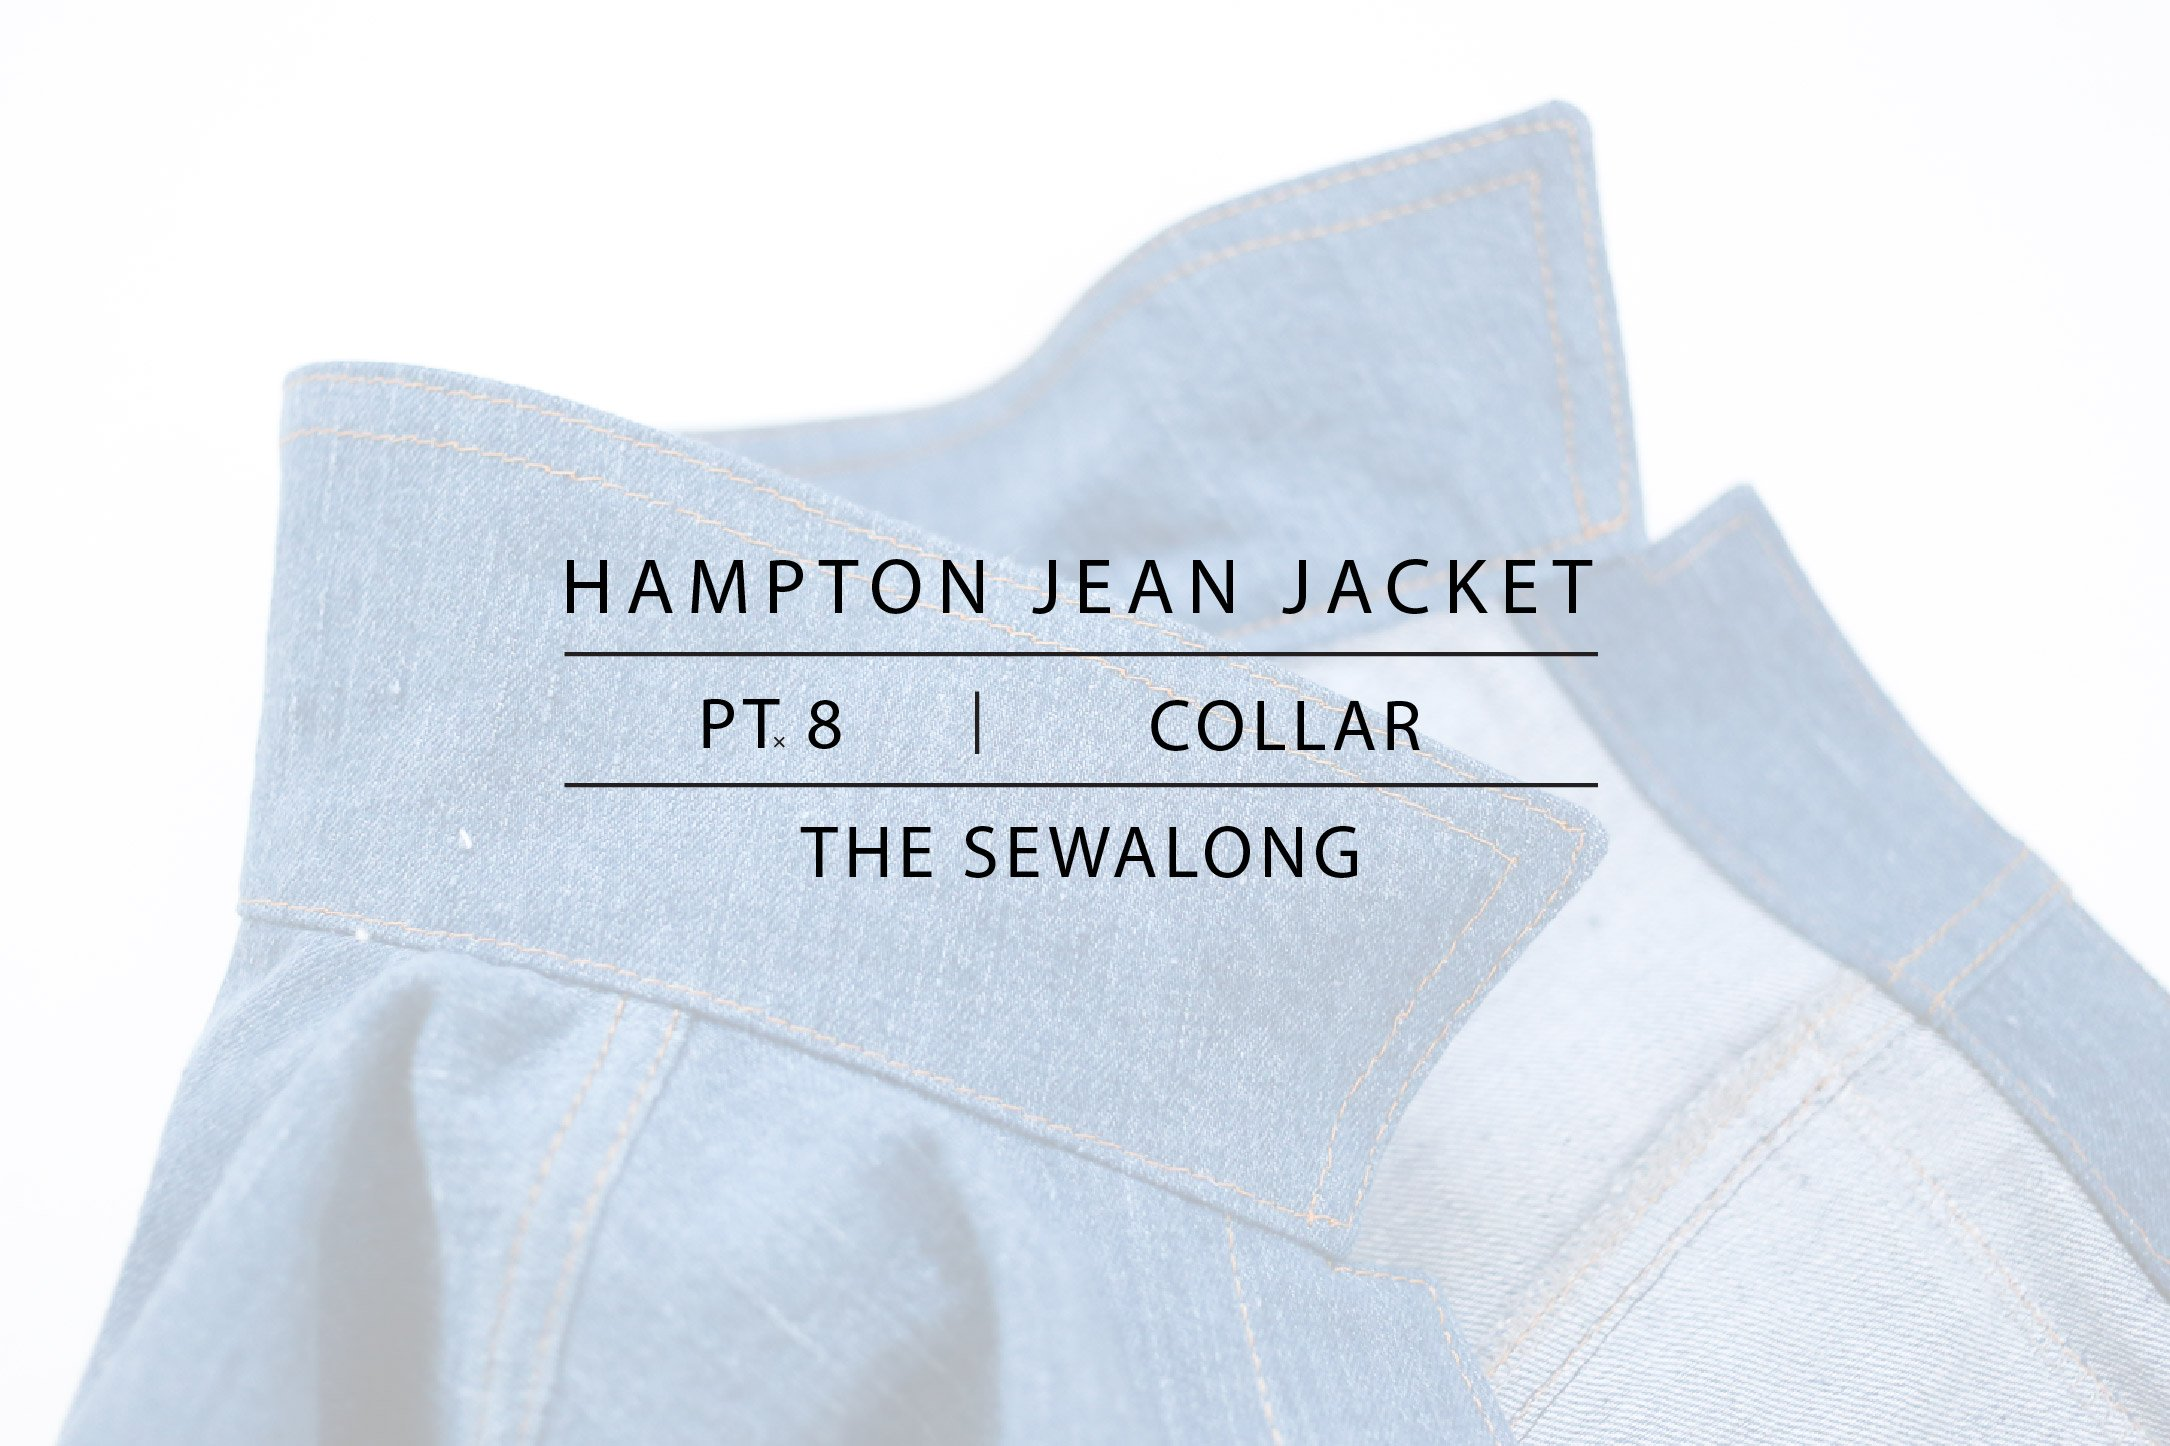 Hampton Jean Jacket Sewalong Pt. 8